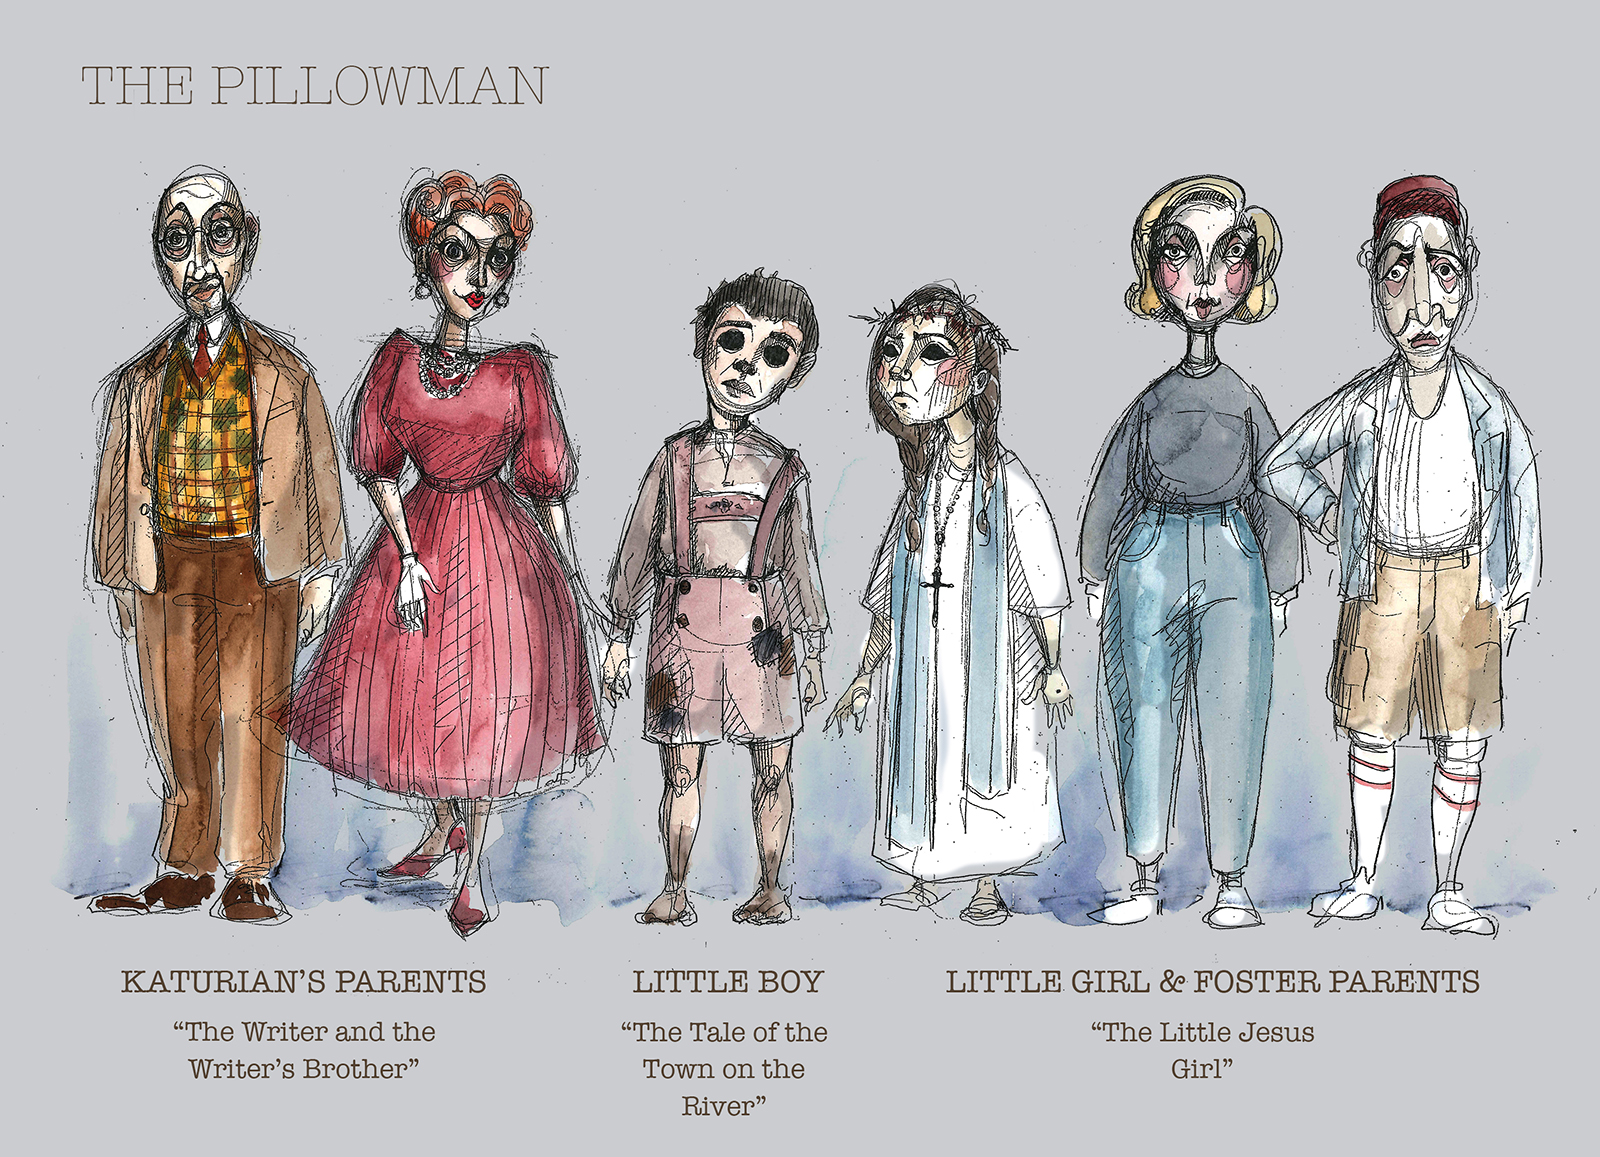 pillowman2 - Sophia Choi